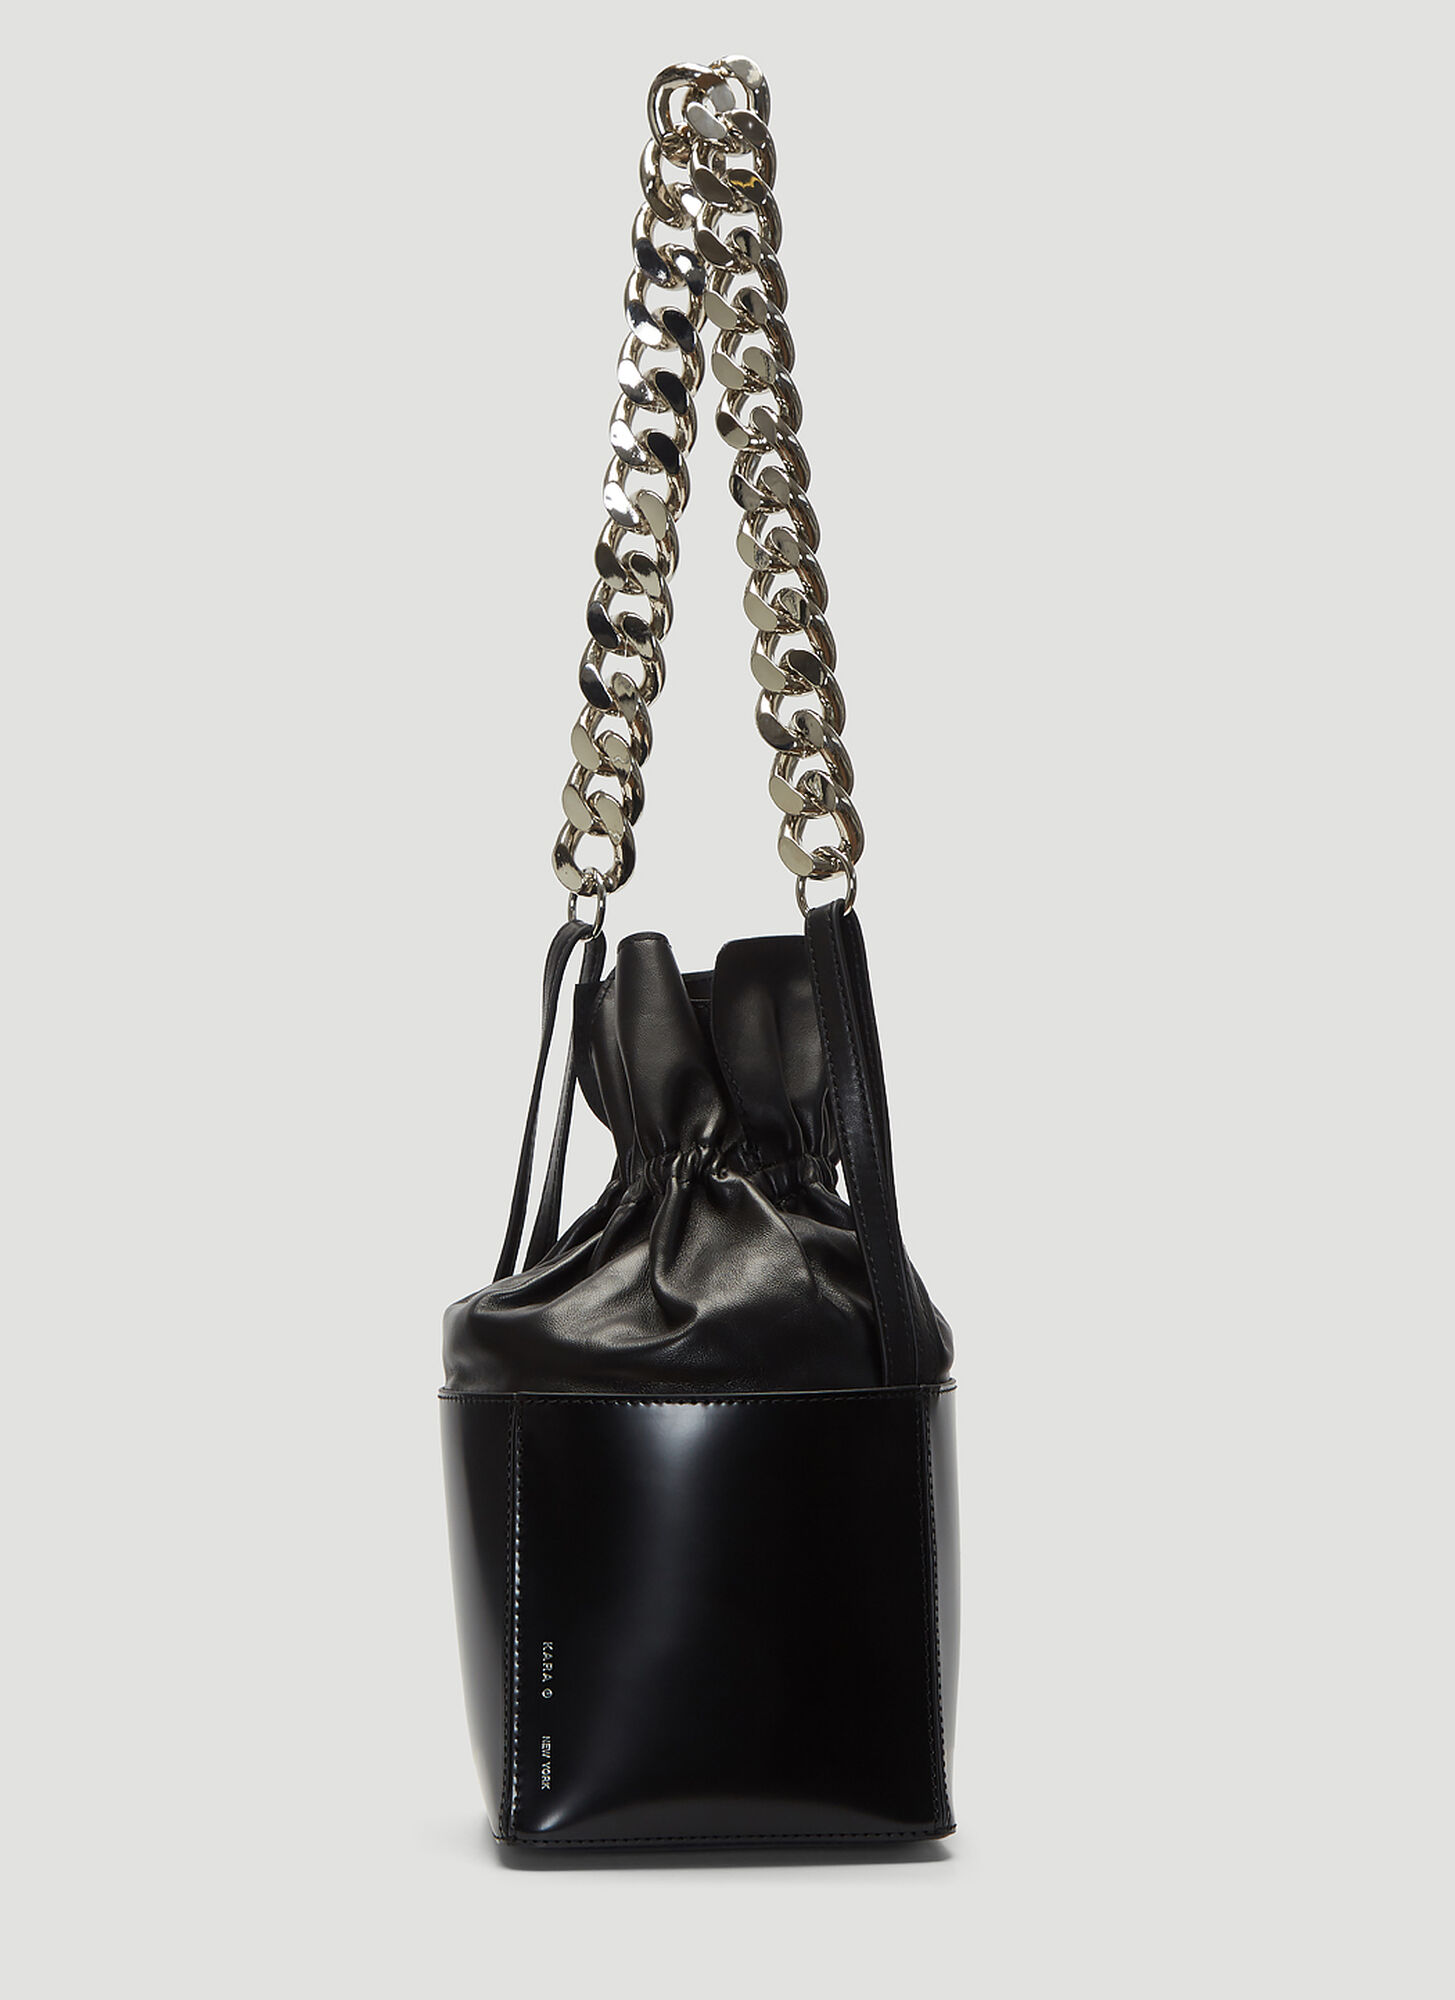 Kara Dirt Bag in Black